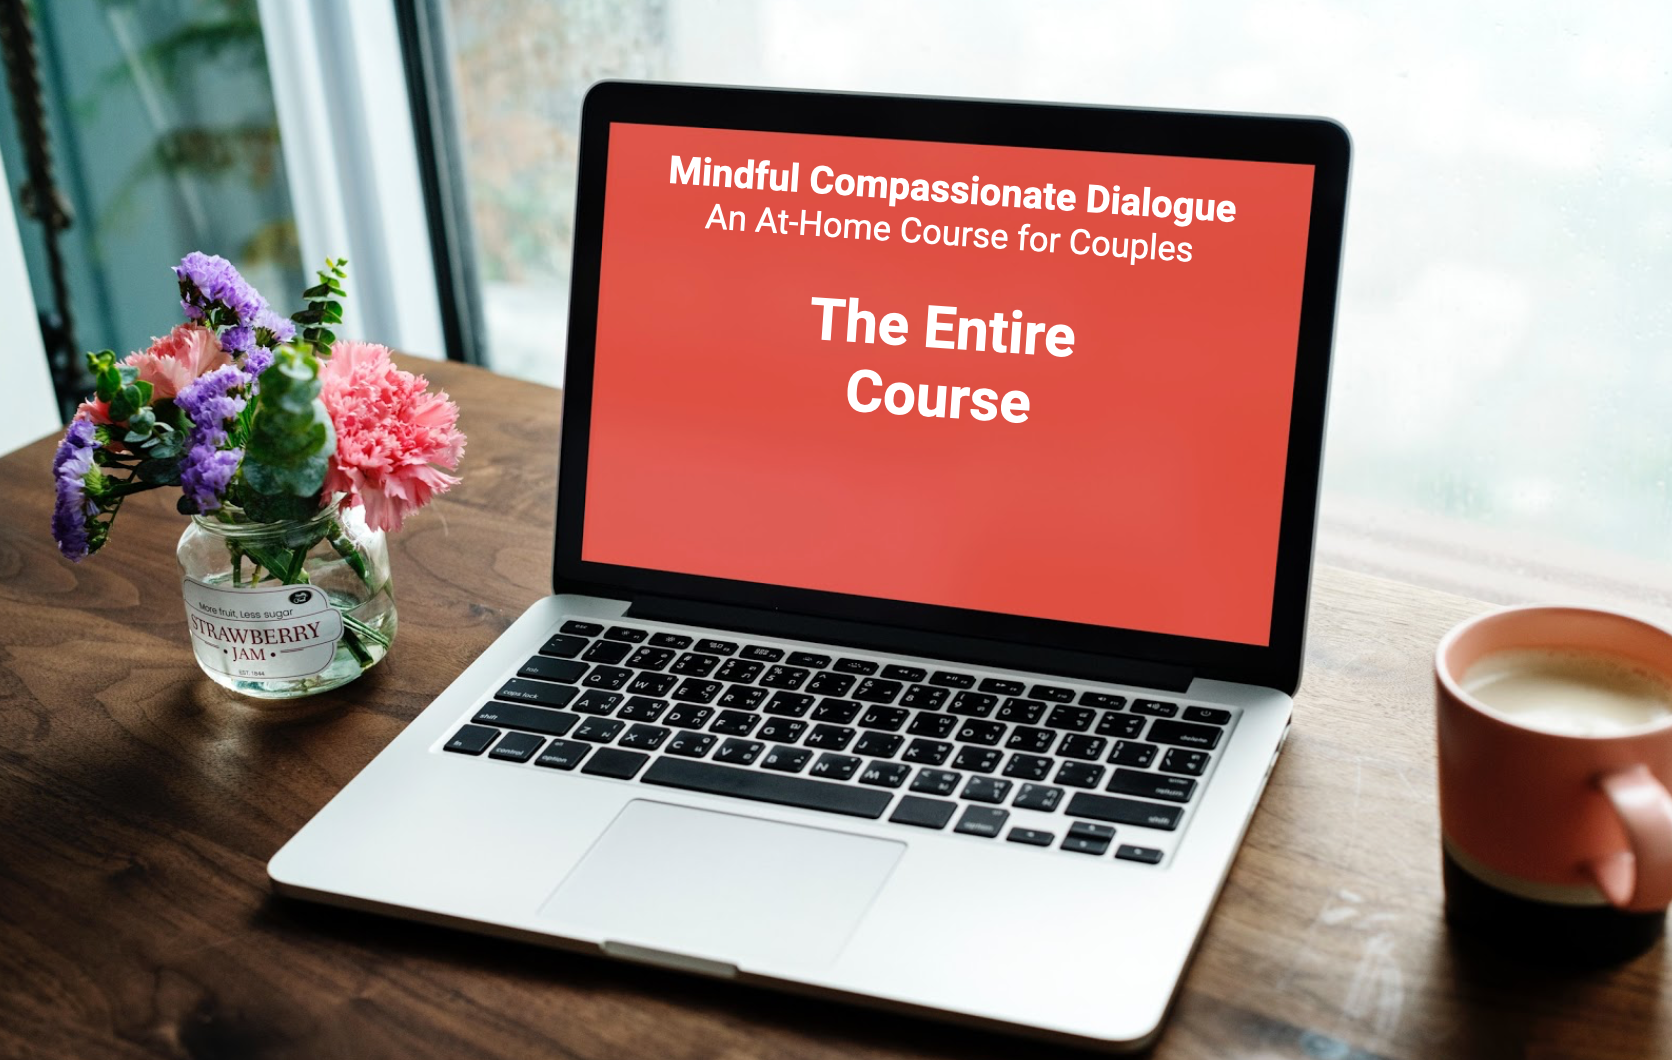 Mindful Compassionate Dialogue: An At Home Course for Couples